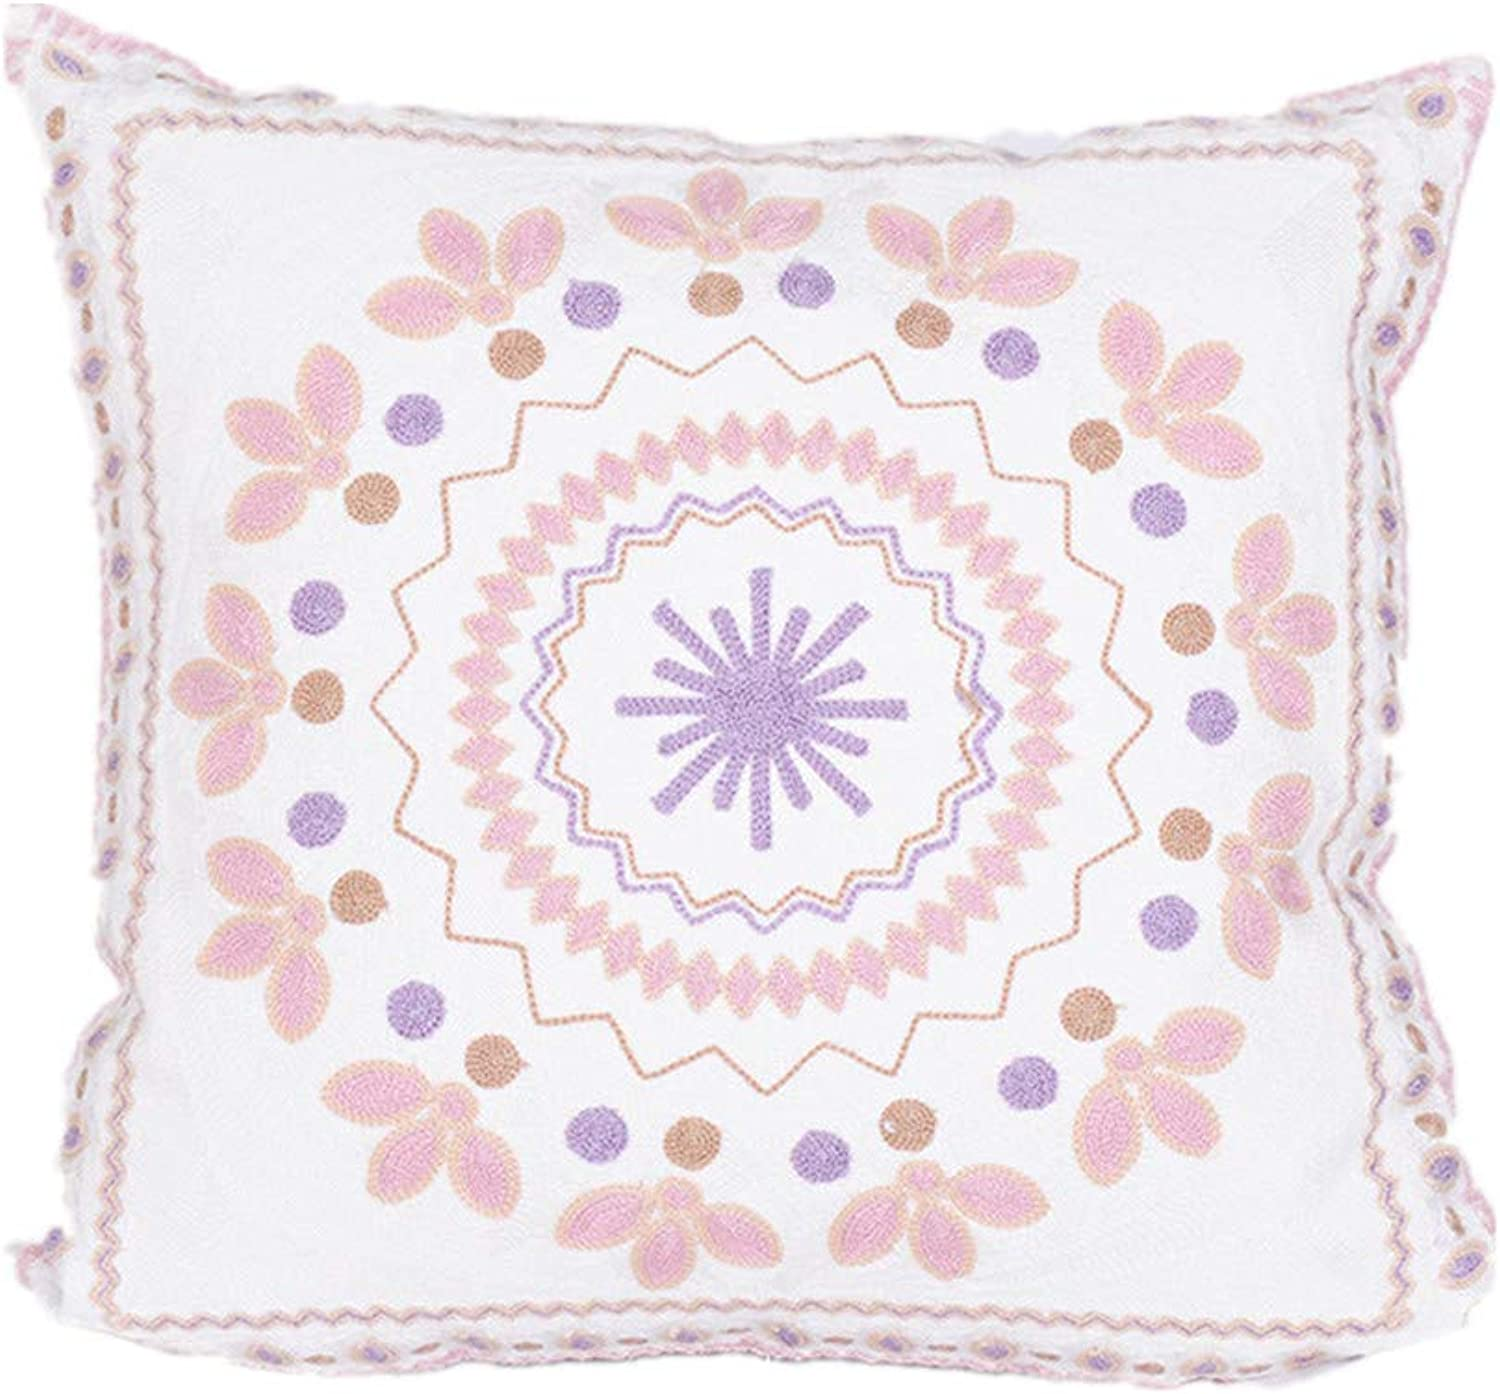 Simple Embroidered Cushion Covers 2 Piece Set Cotton and Linen Living Room Home Decoration Sofa Cushion Office Napping Pillow Car Waist Pad 45X45cm 17X17inch,Flowers2,45X45cm